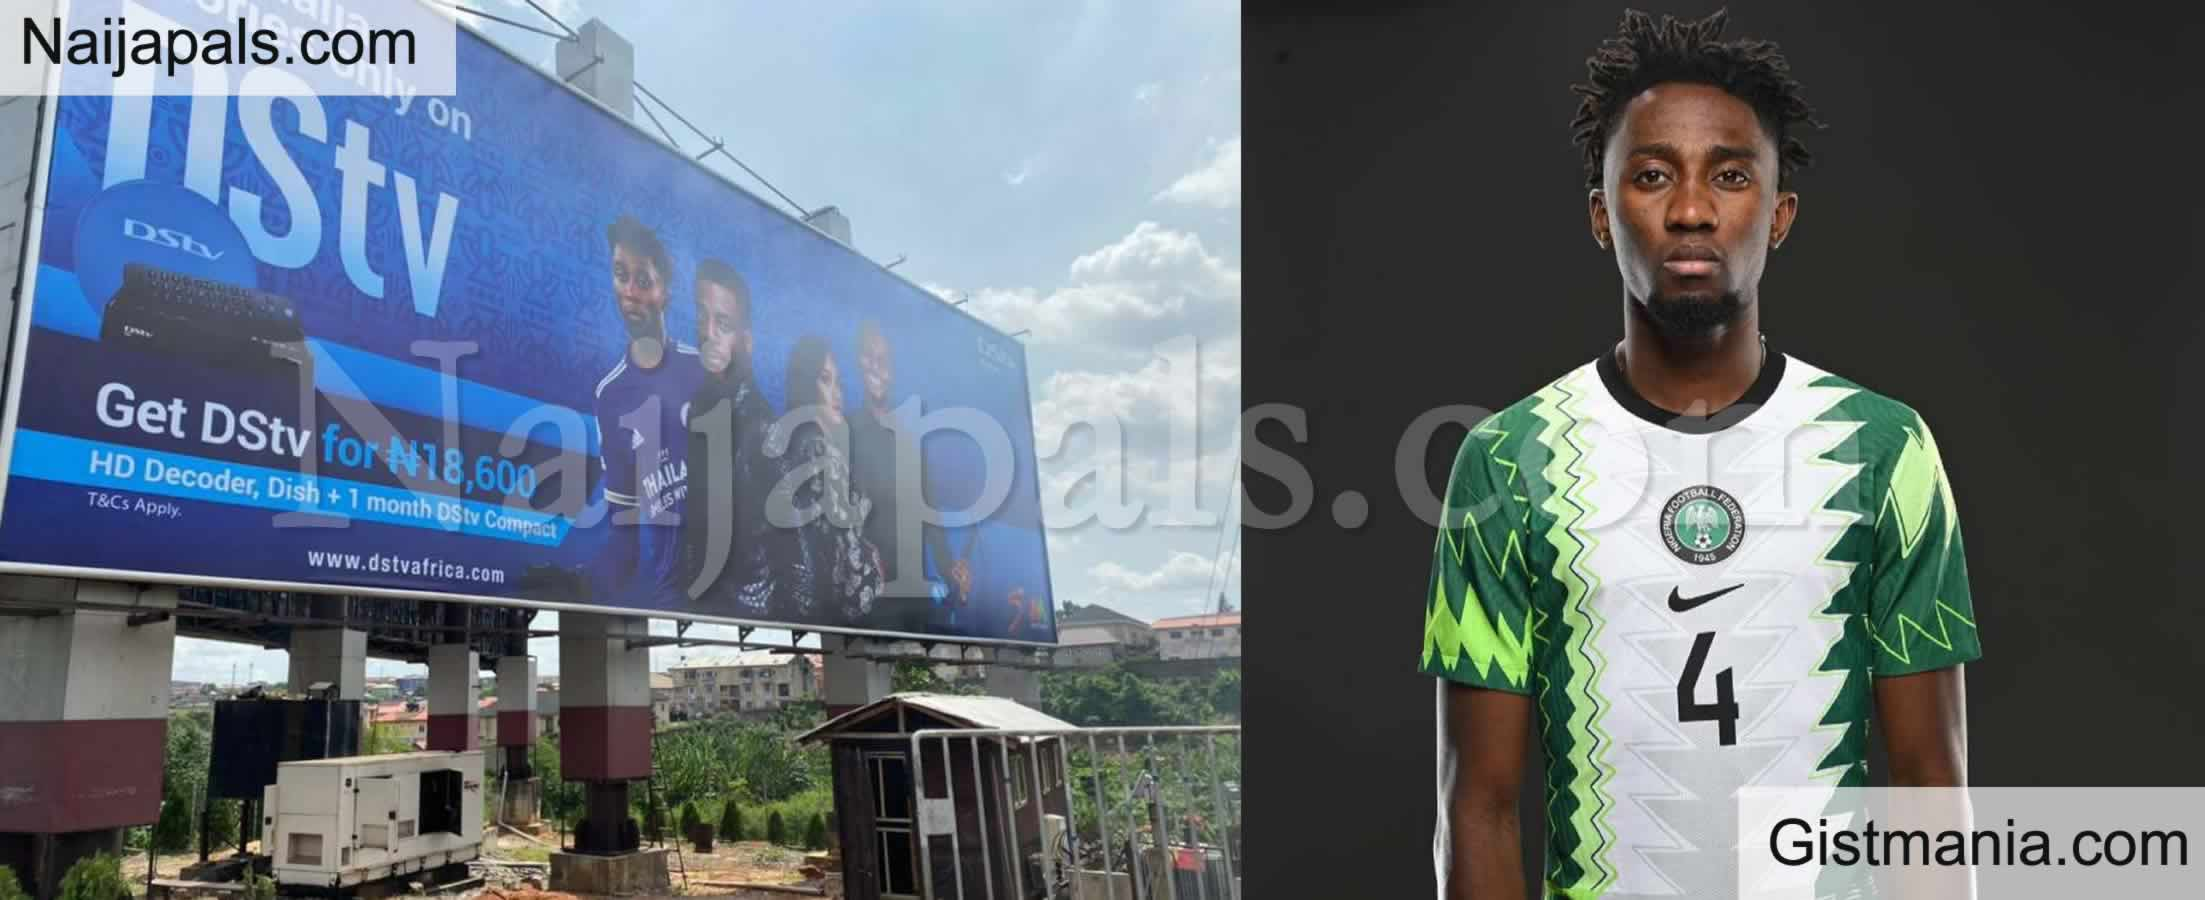 <img alt='.' class='lazyload' data-src='https://img.gistmania.com/emot/photo.png' /> <b>Nigerian Player, Ndidi Calls Out DSTV For Using His Picture as Advert Without His Consent</b>